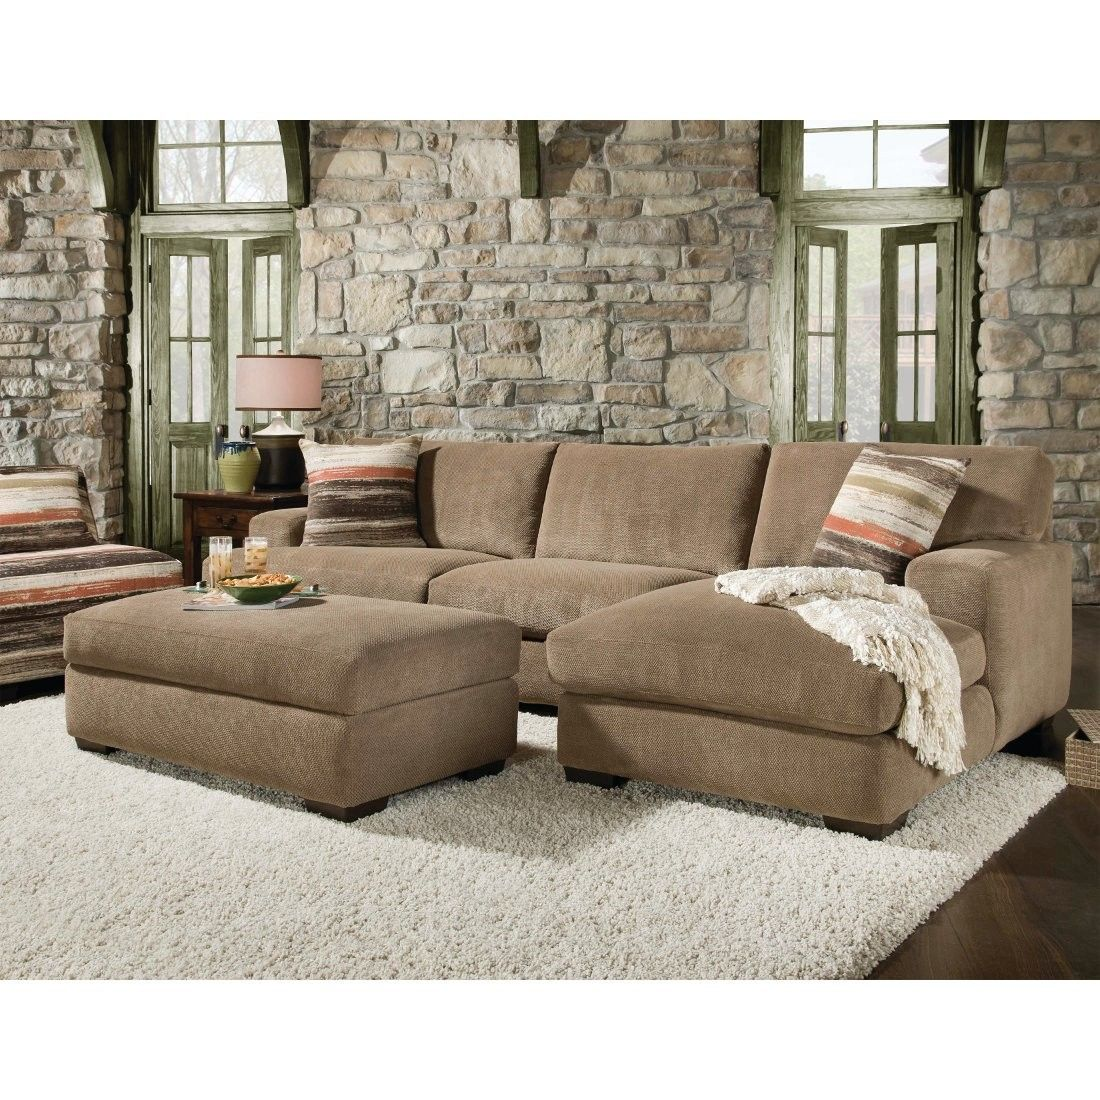 mead living room laf sofa raf chaise ottoman sectional rh pinterest com grey sofa with chaise and ottoman sectional sofa with chaise lounge and ottoman